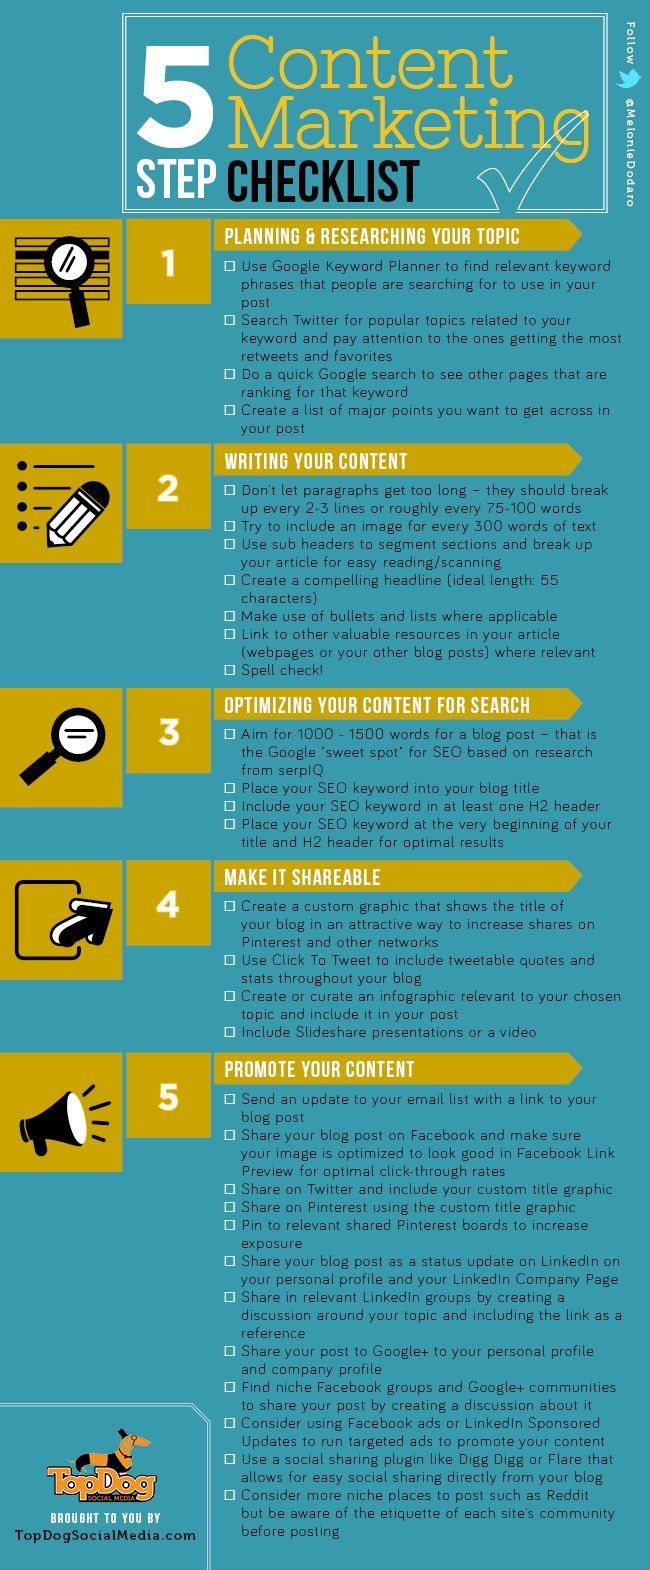 Content Marketing Infographic - 5-Step Content Marketing Checklist #contentmarketing #infographic